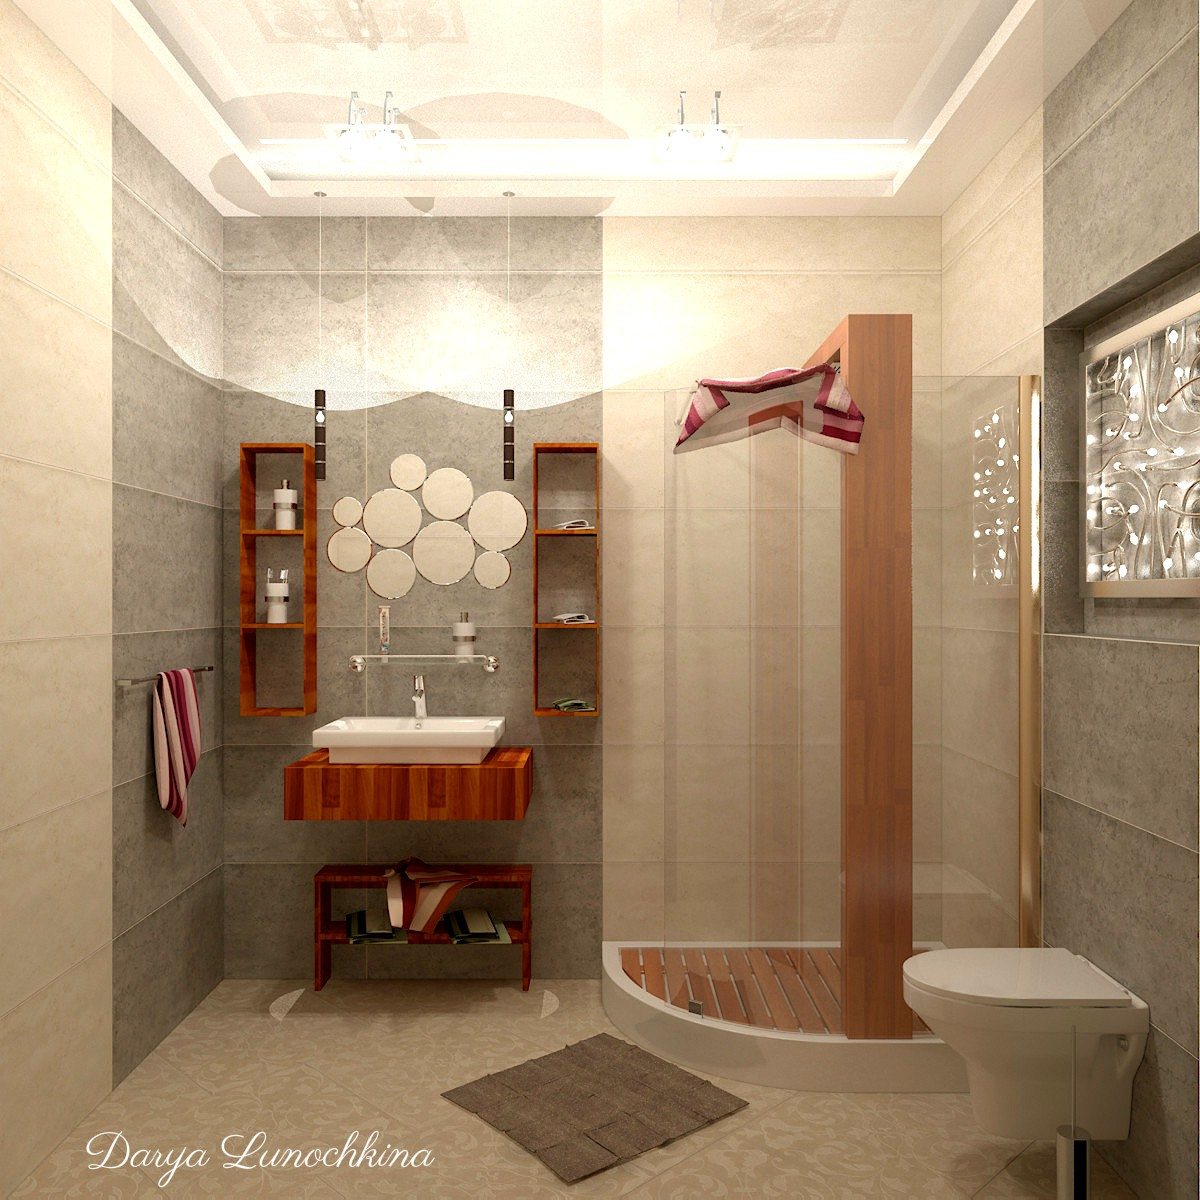 3d visualization of the project in the bathroom 3d max, render vray of darya.lunochkina